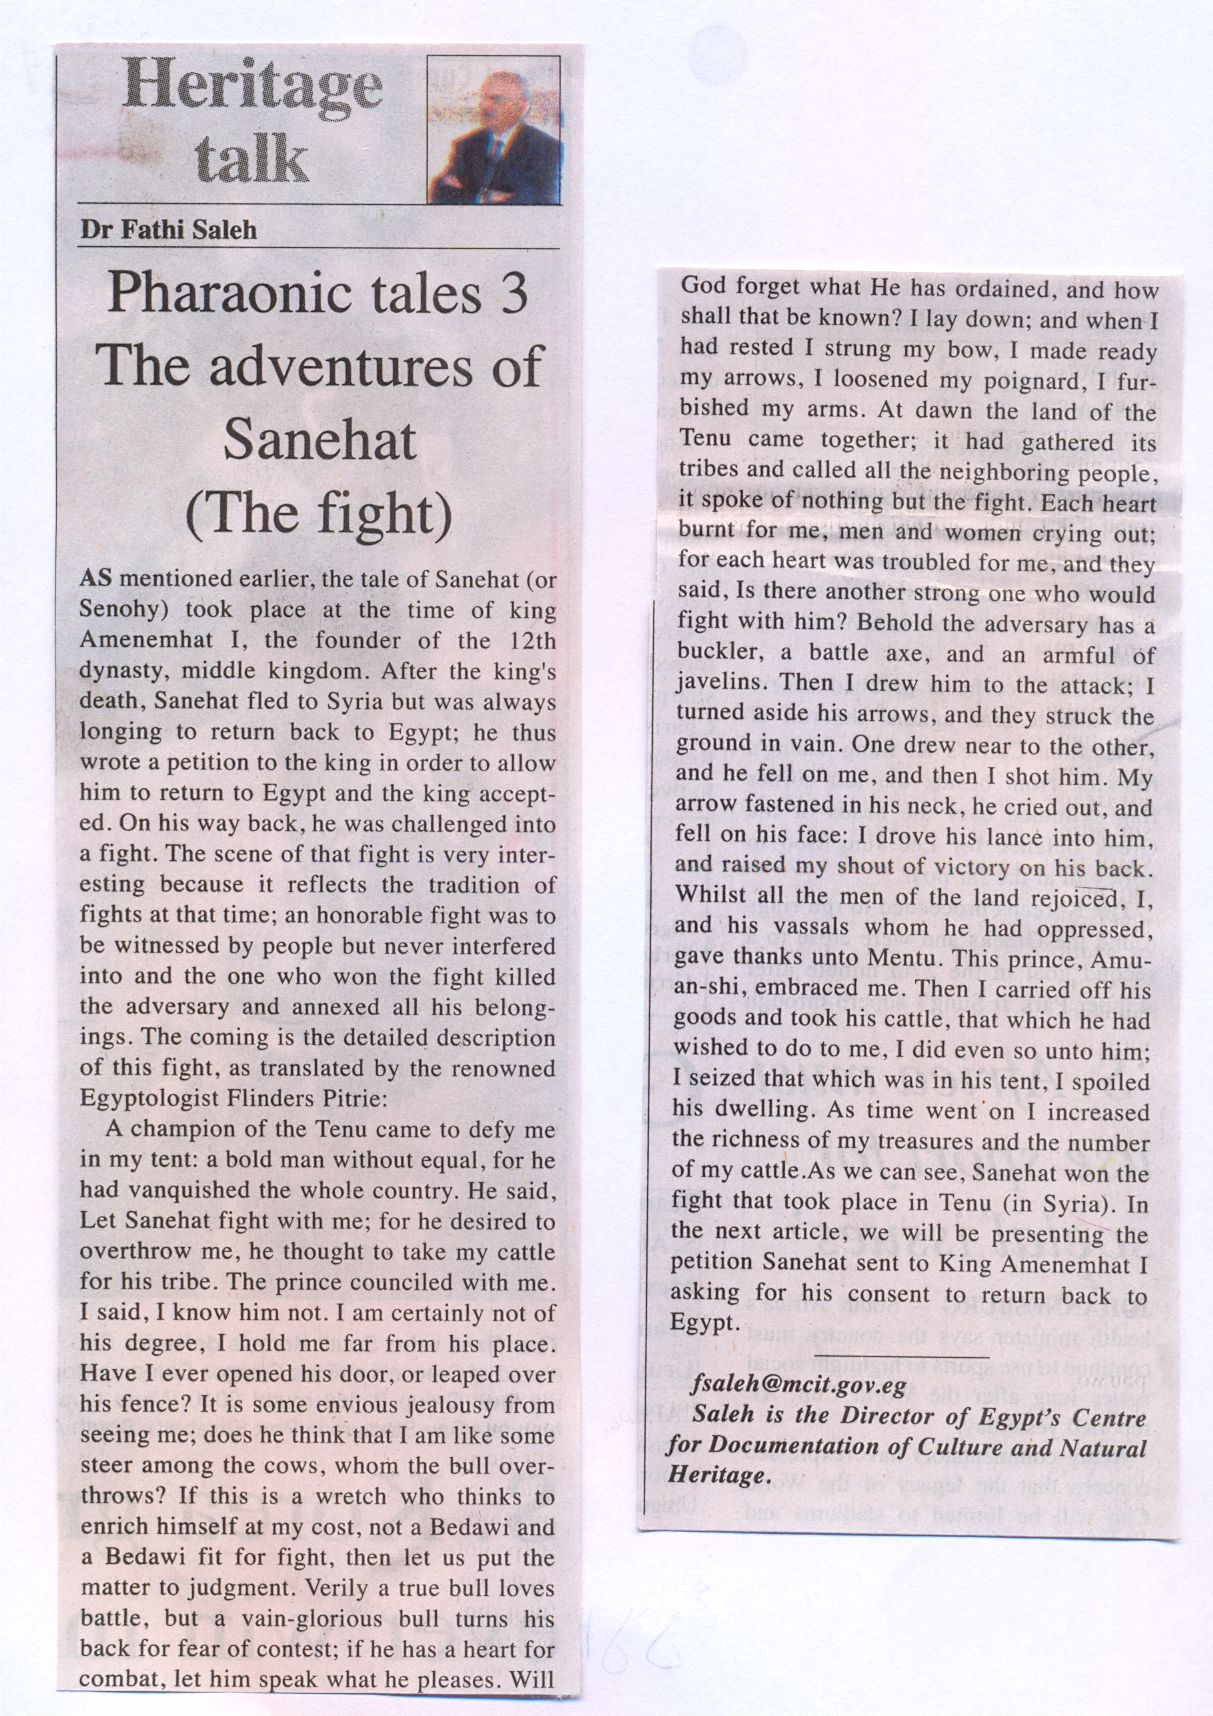 pharaonic tales 3 the adventures of sanehat (the fight)